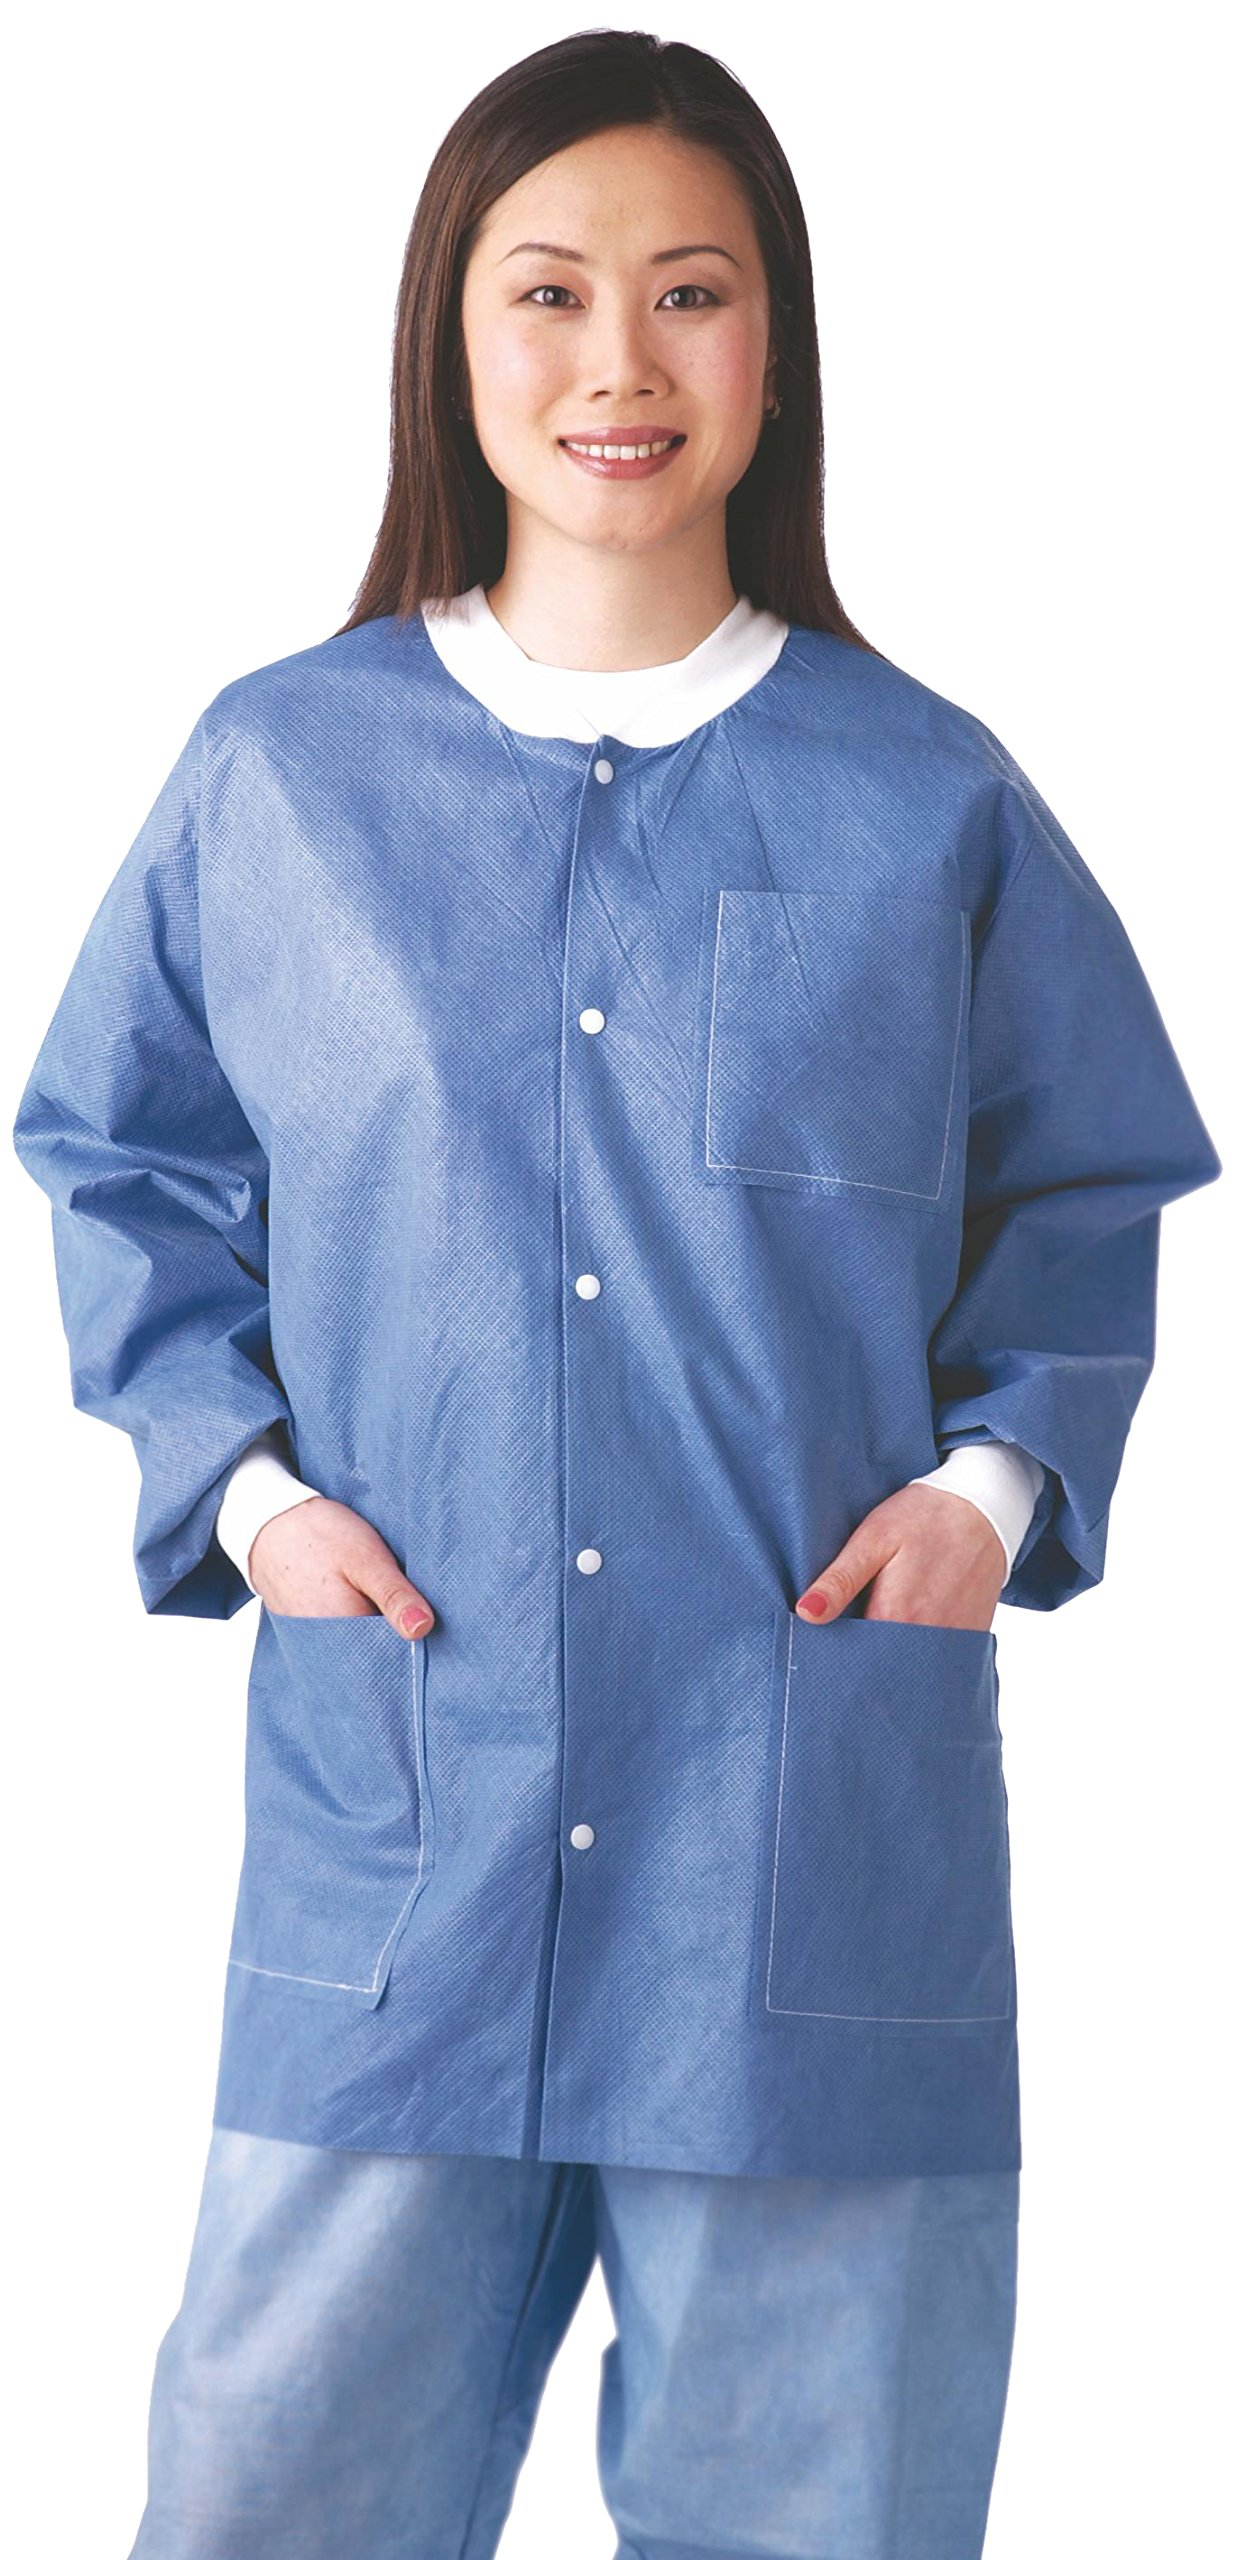 Medline NONRP600M Multi-Layer Material Lab Jackets with Knit Cuff and Collar, Medium, Blue (Pack of 30) by Medline (Image #1)